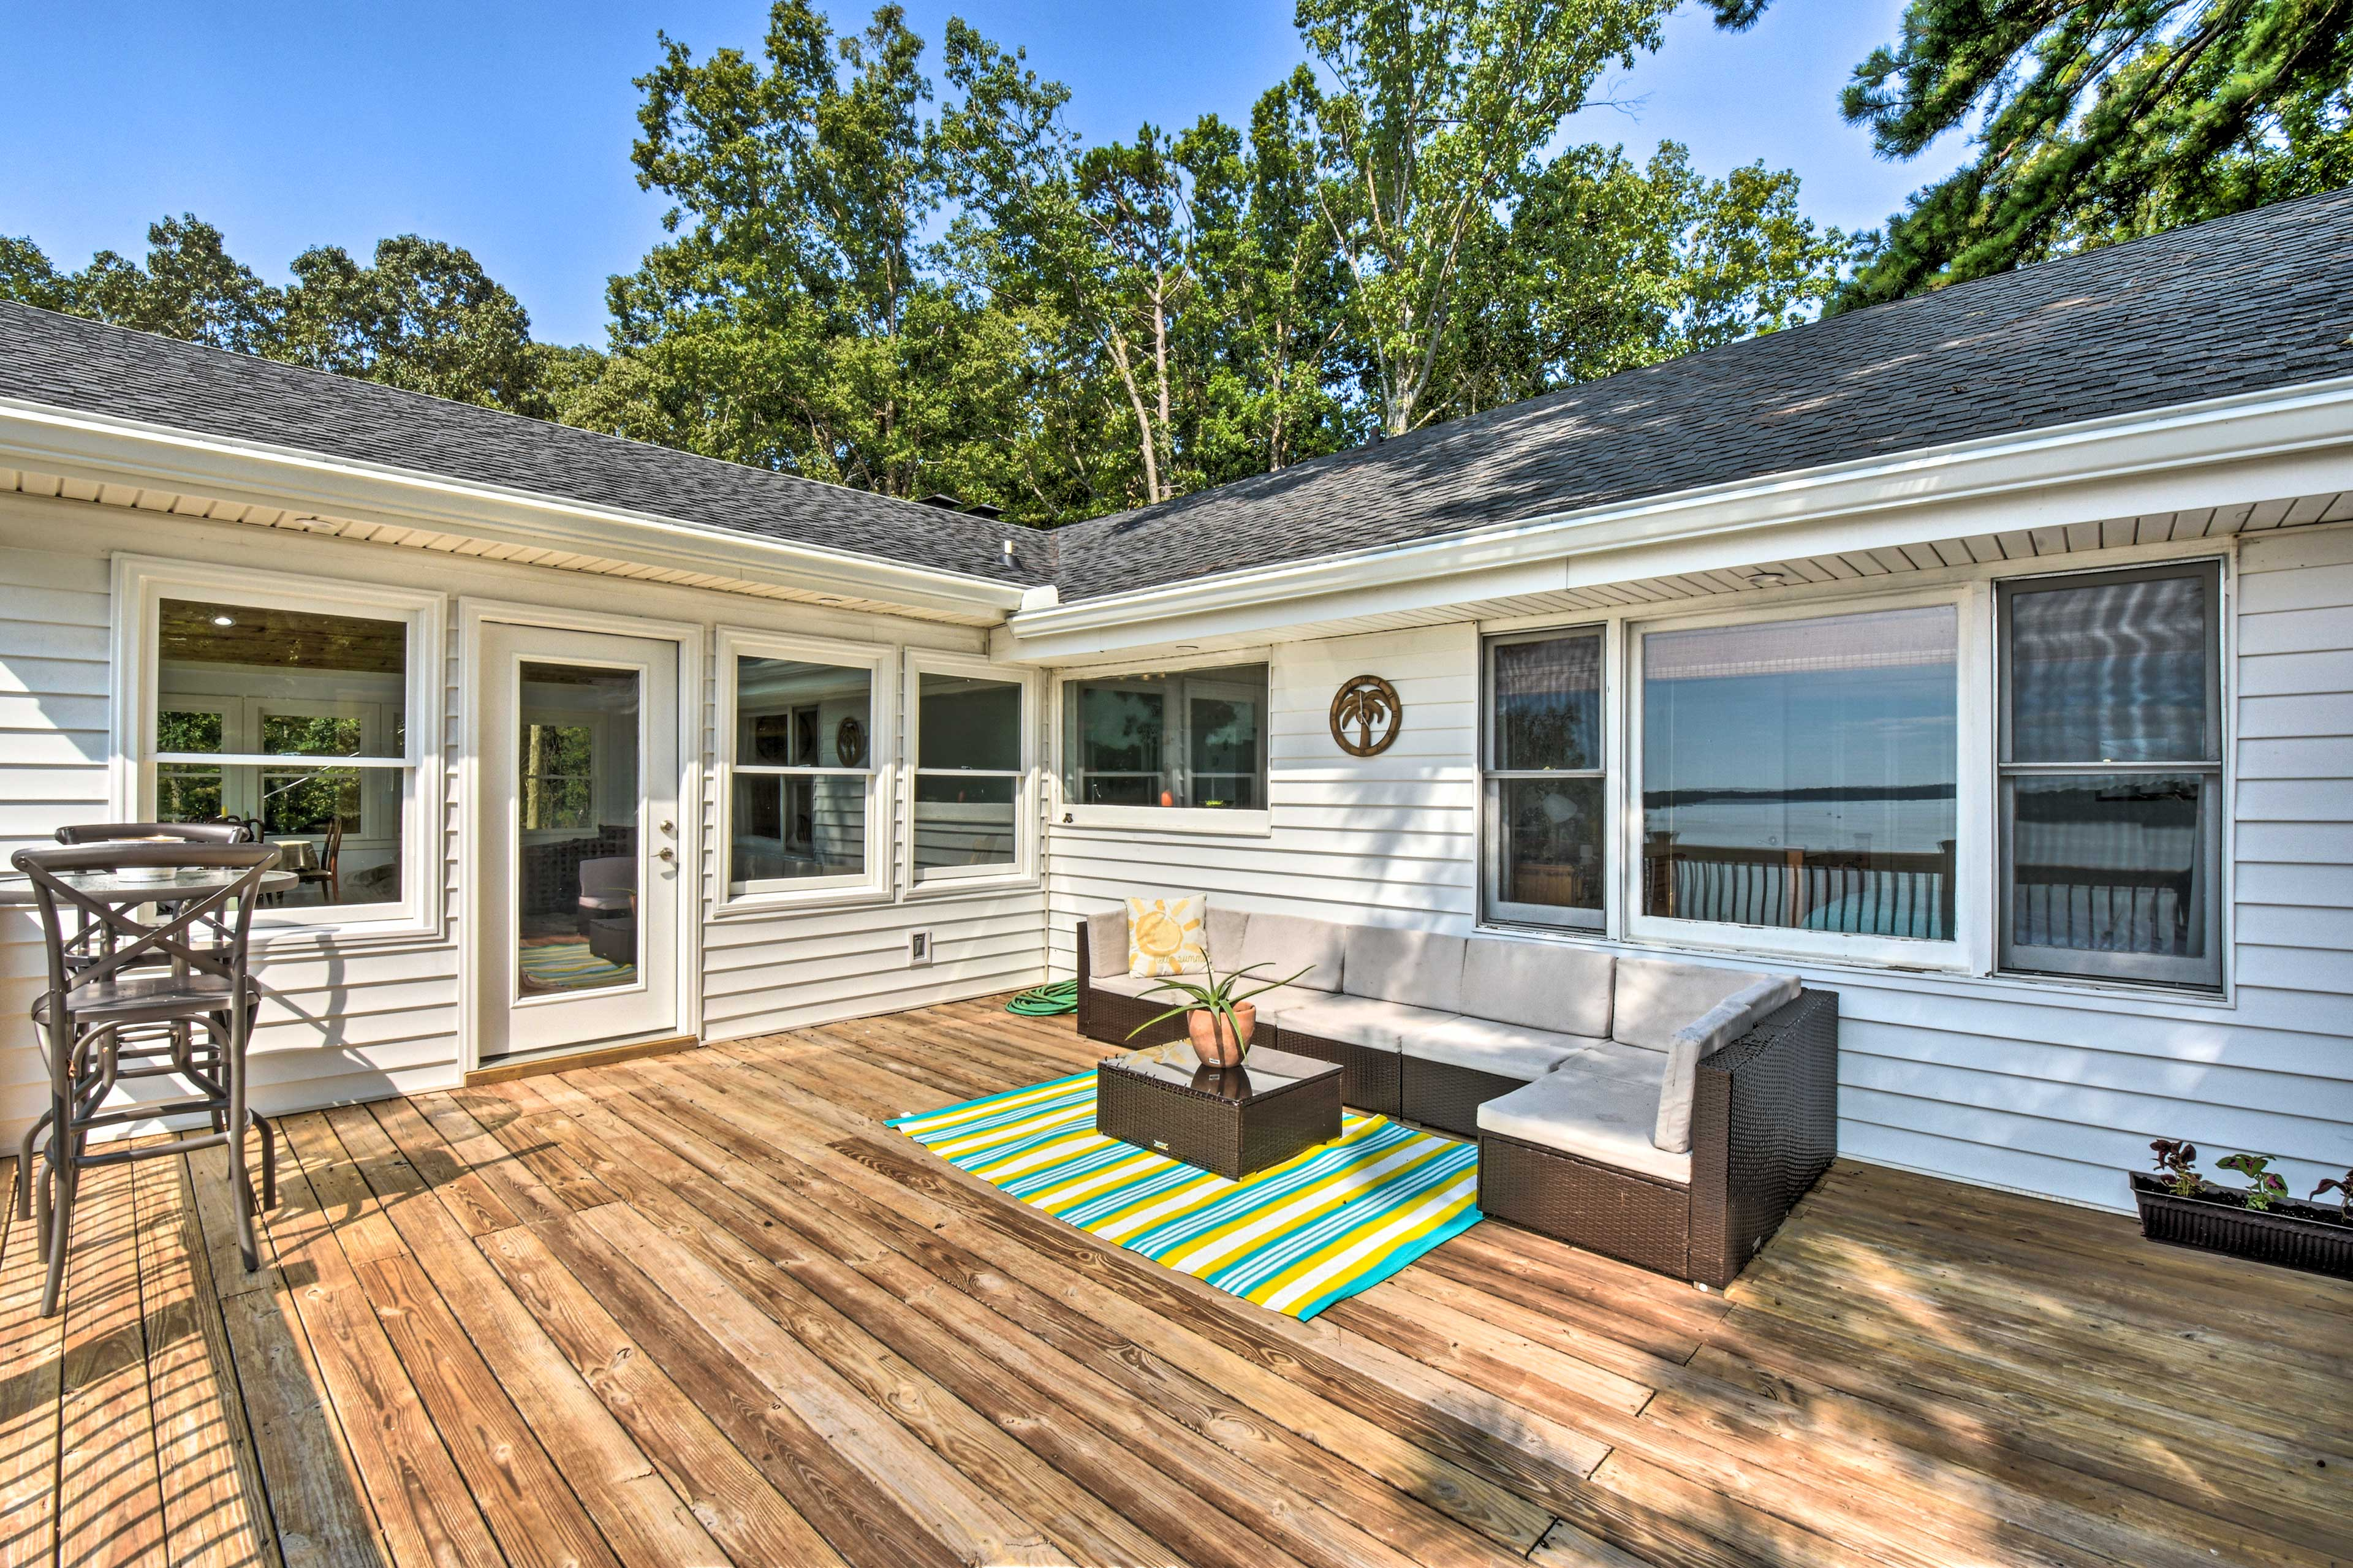 Property Exterior | Deck w/ Seating